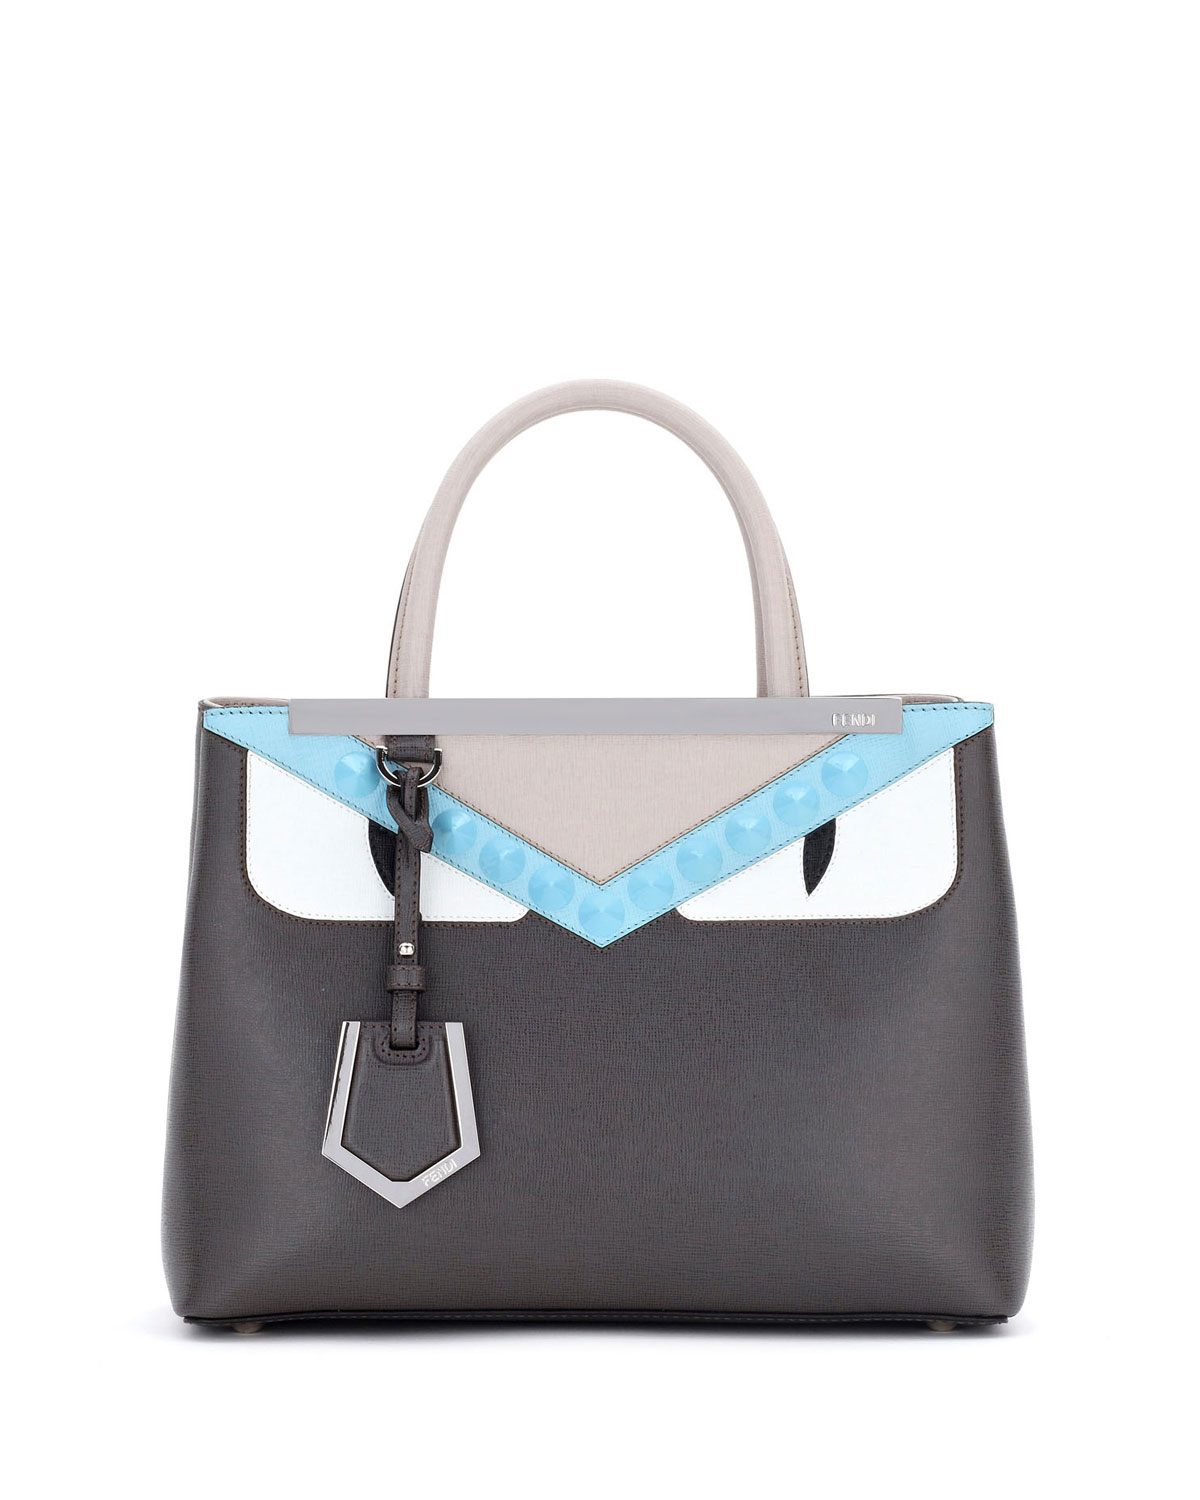 Fendi 2Jours Petite Monster Tote Bag 025100114be2d